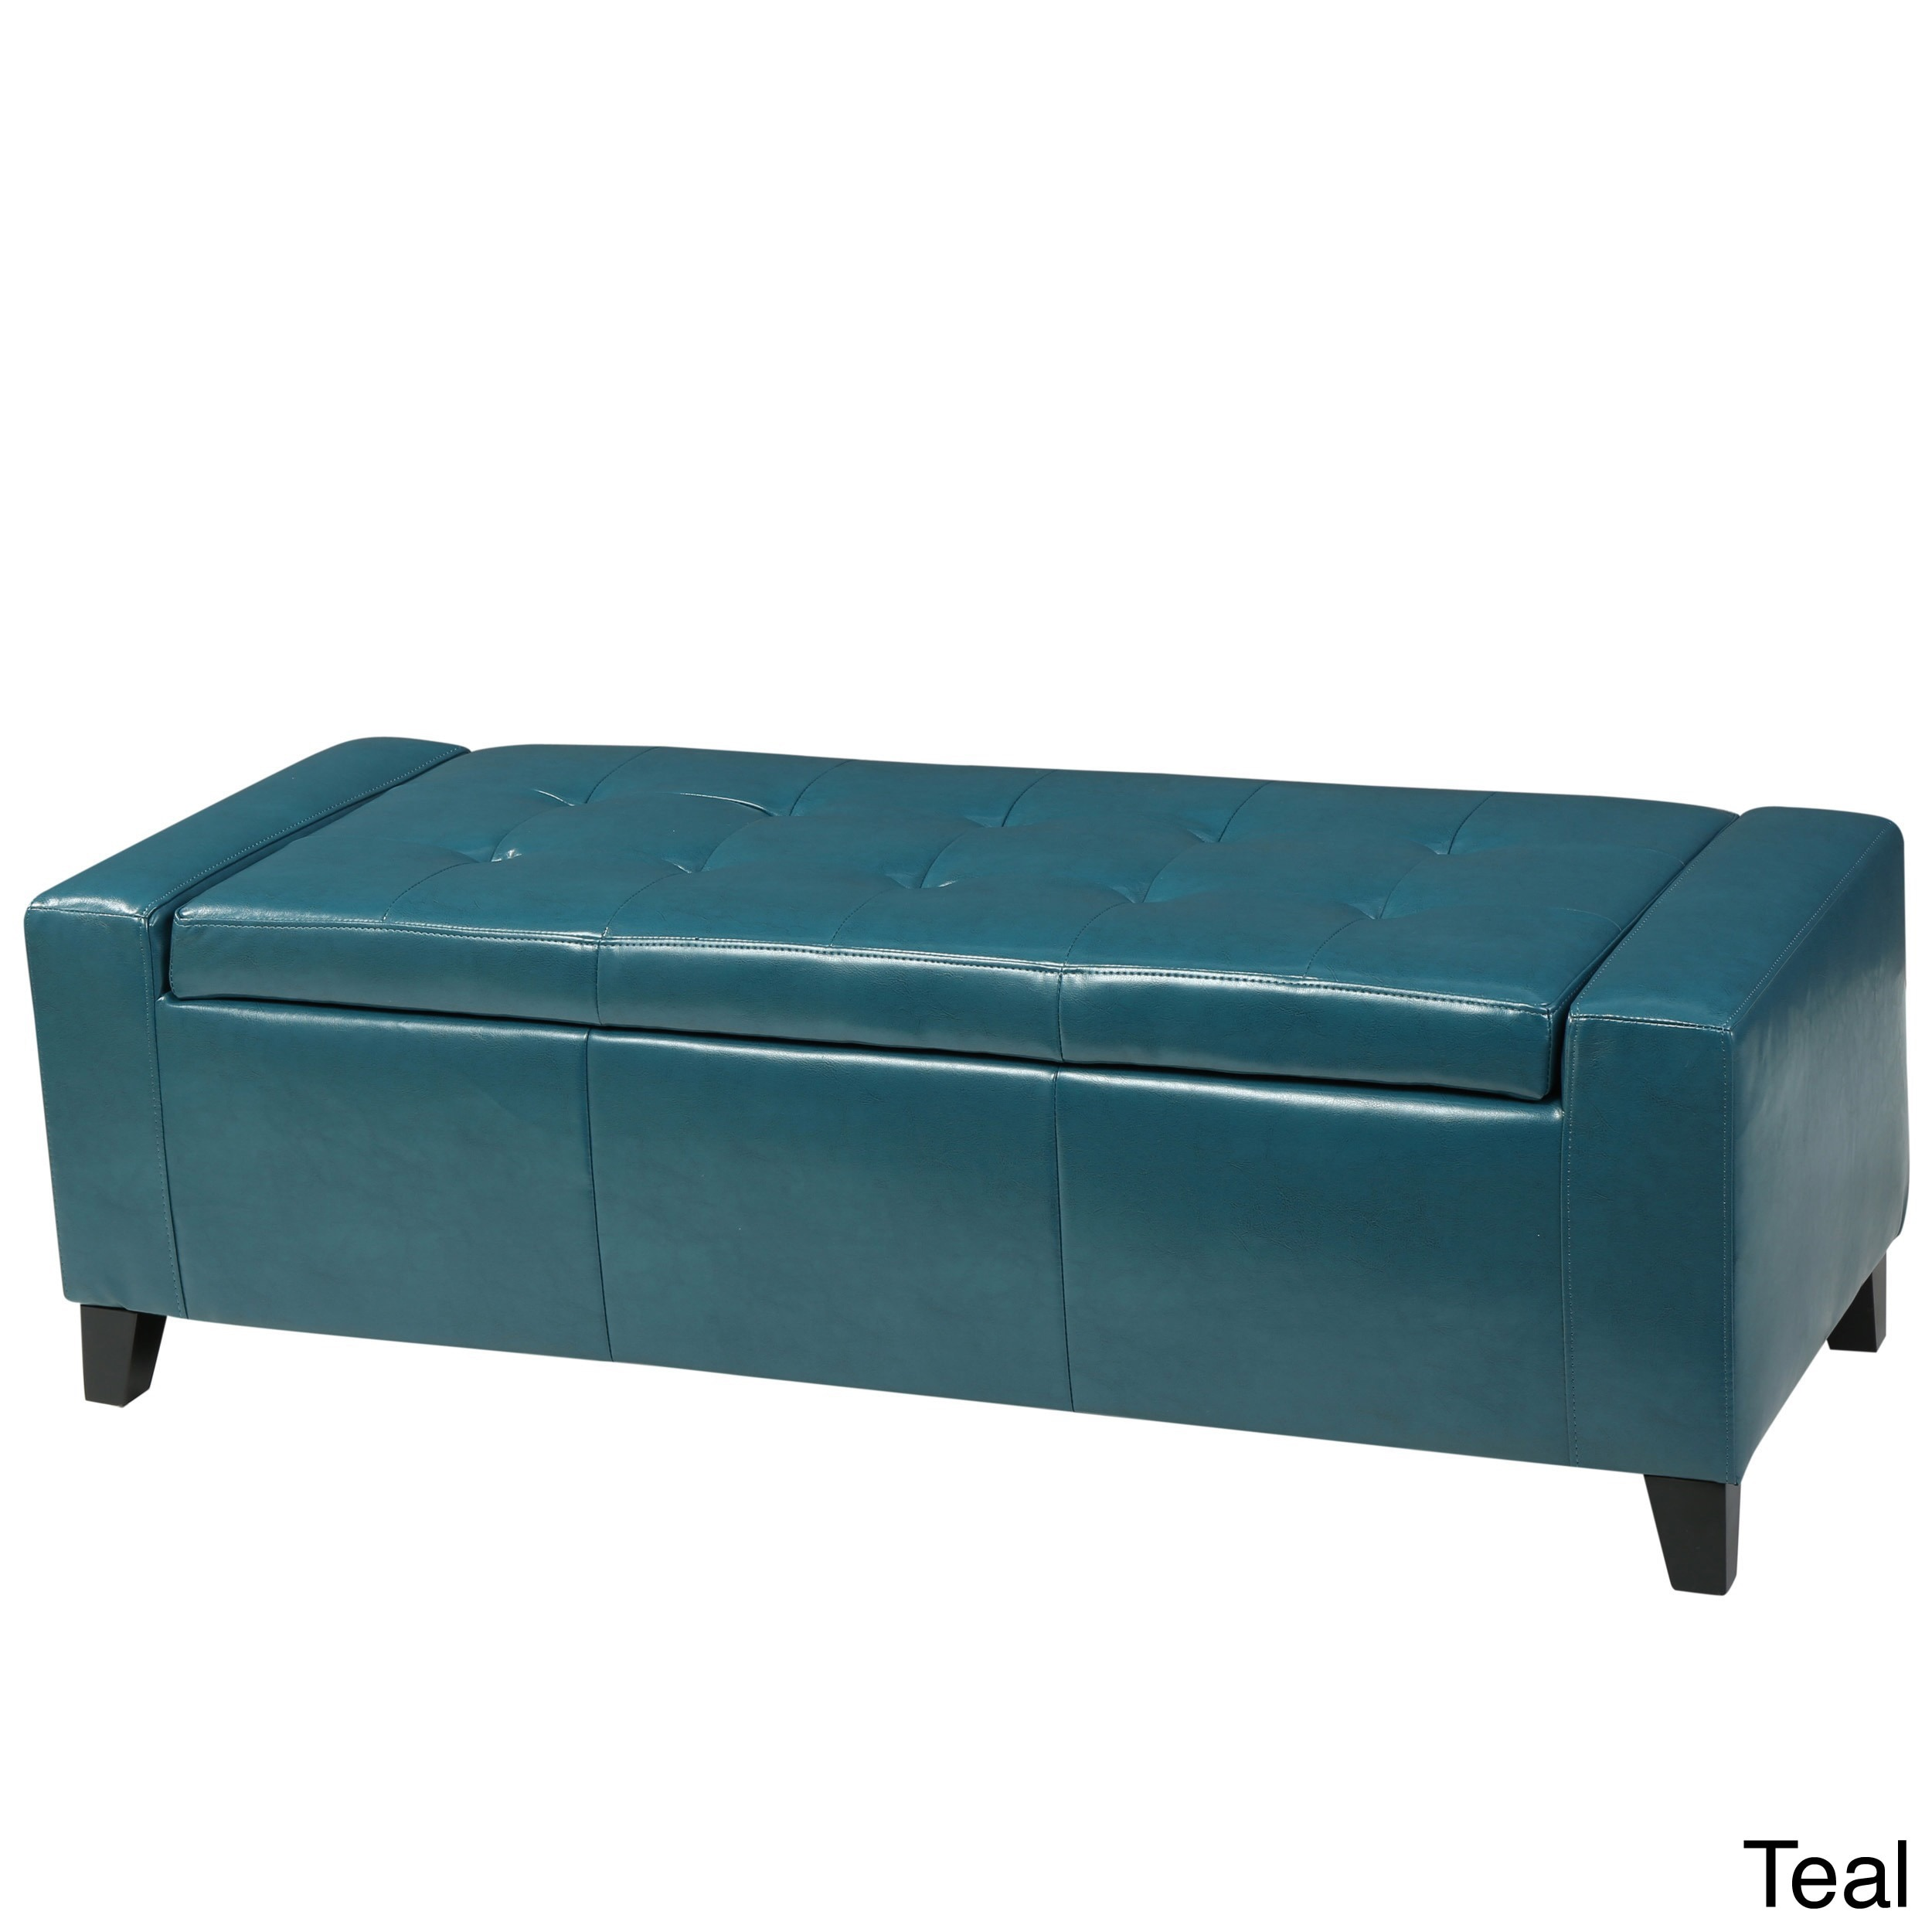 in ottoman storage for your enjoy pin room this upholstered a bench perfect sasten either today home living